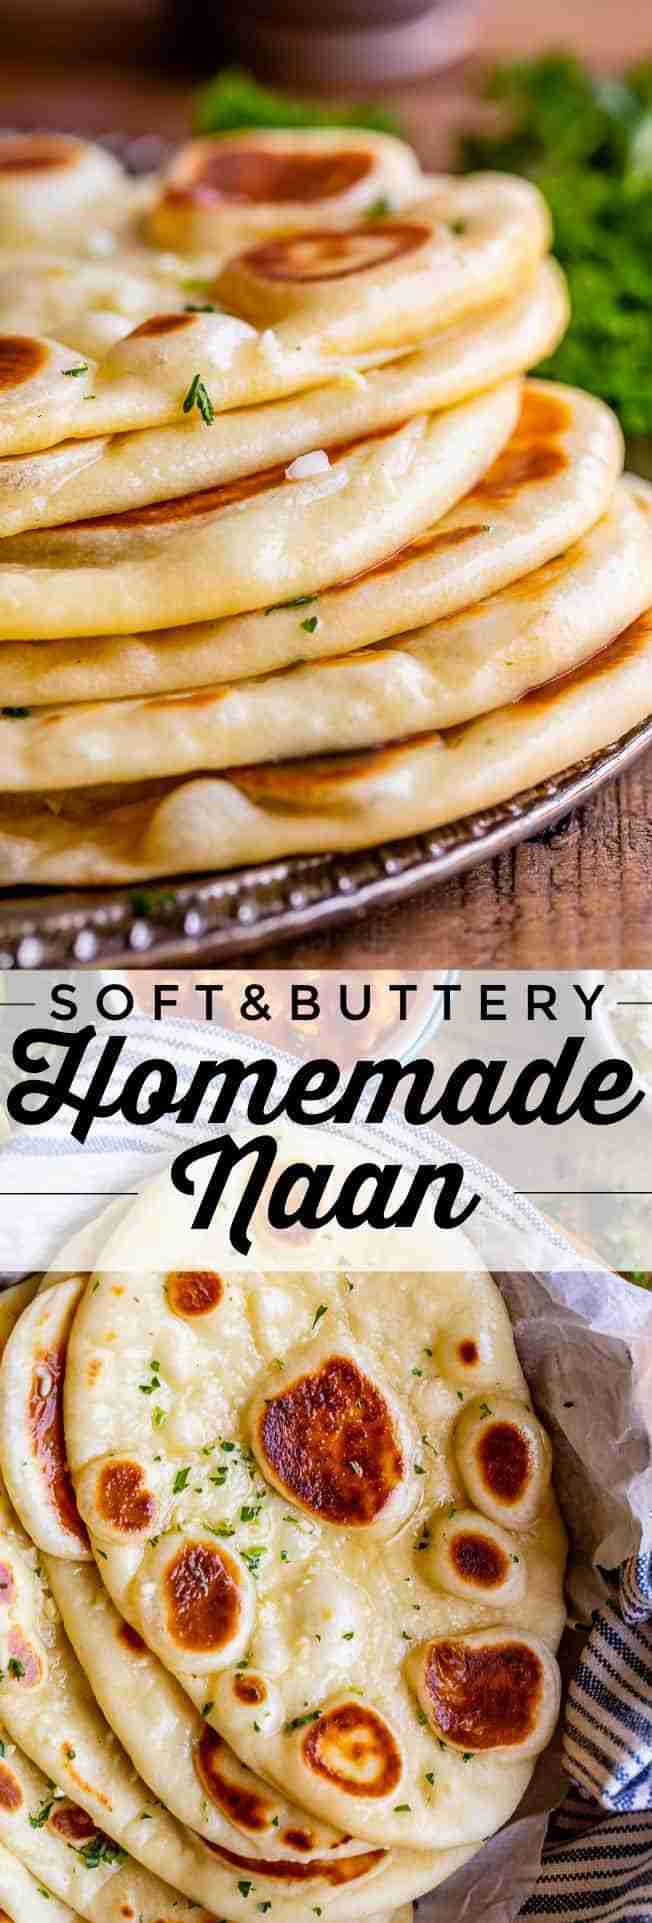 Homemade Naan Bread Recipe from The Food Charlatan